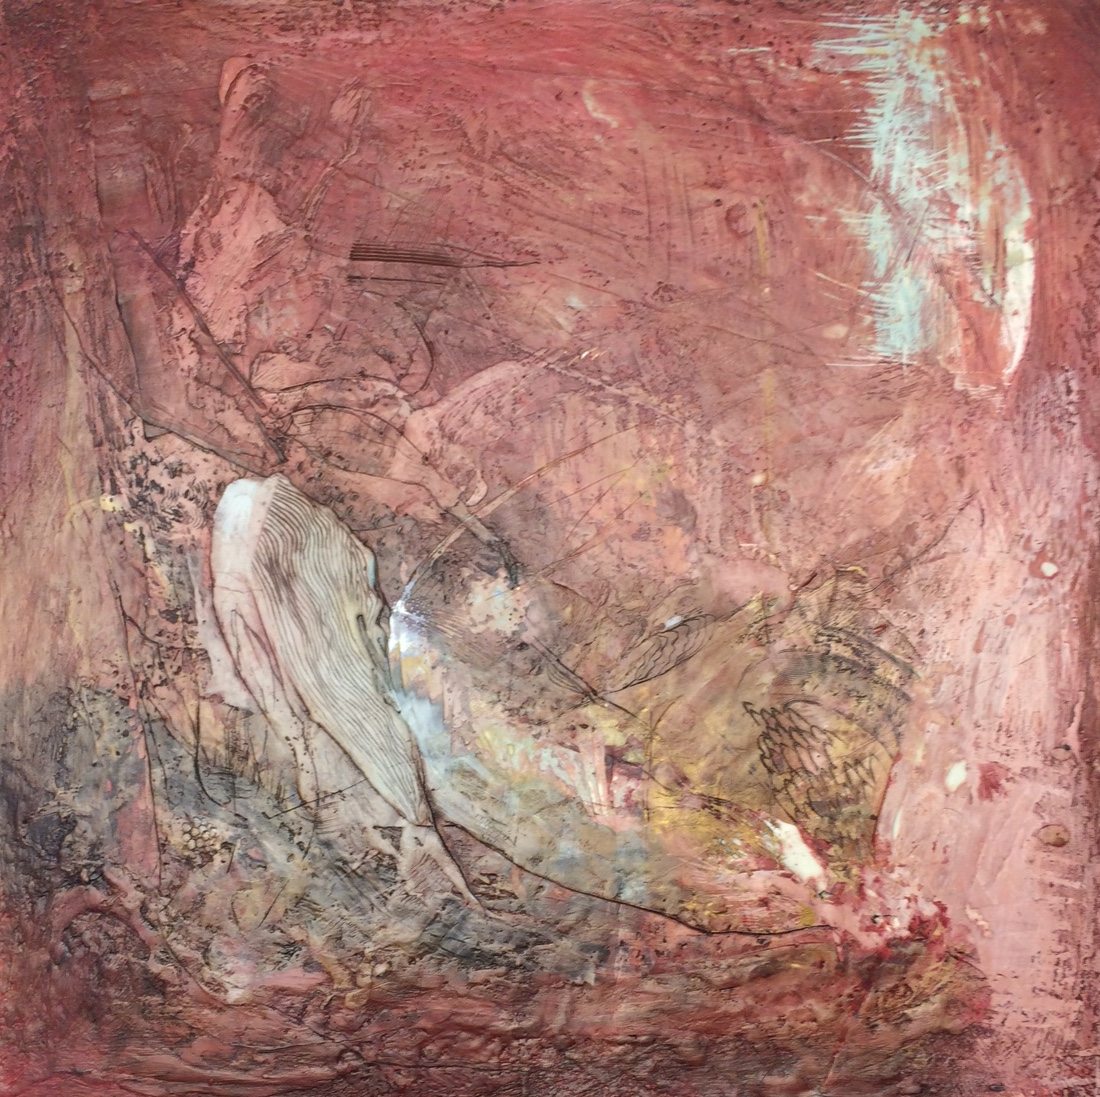 Red Archetype , encaustic on canvas, 24 x 24 in. (61 x 61cm)